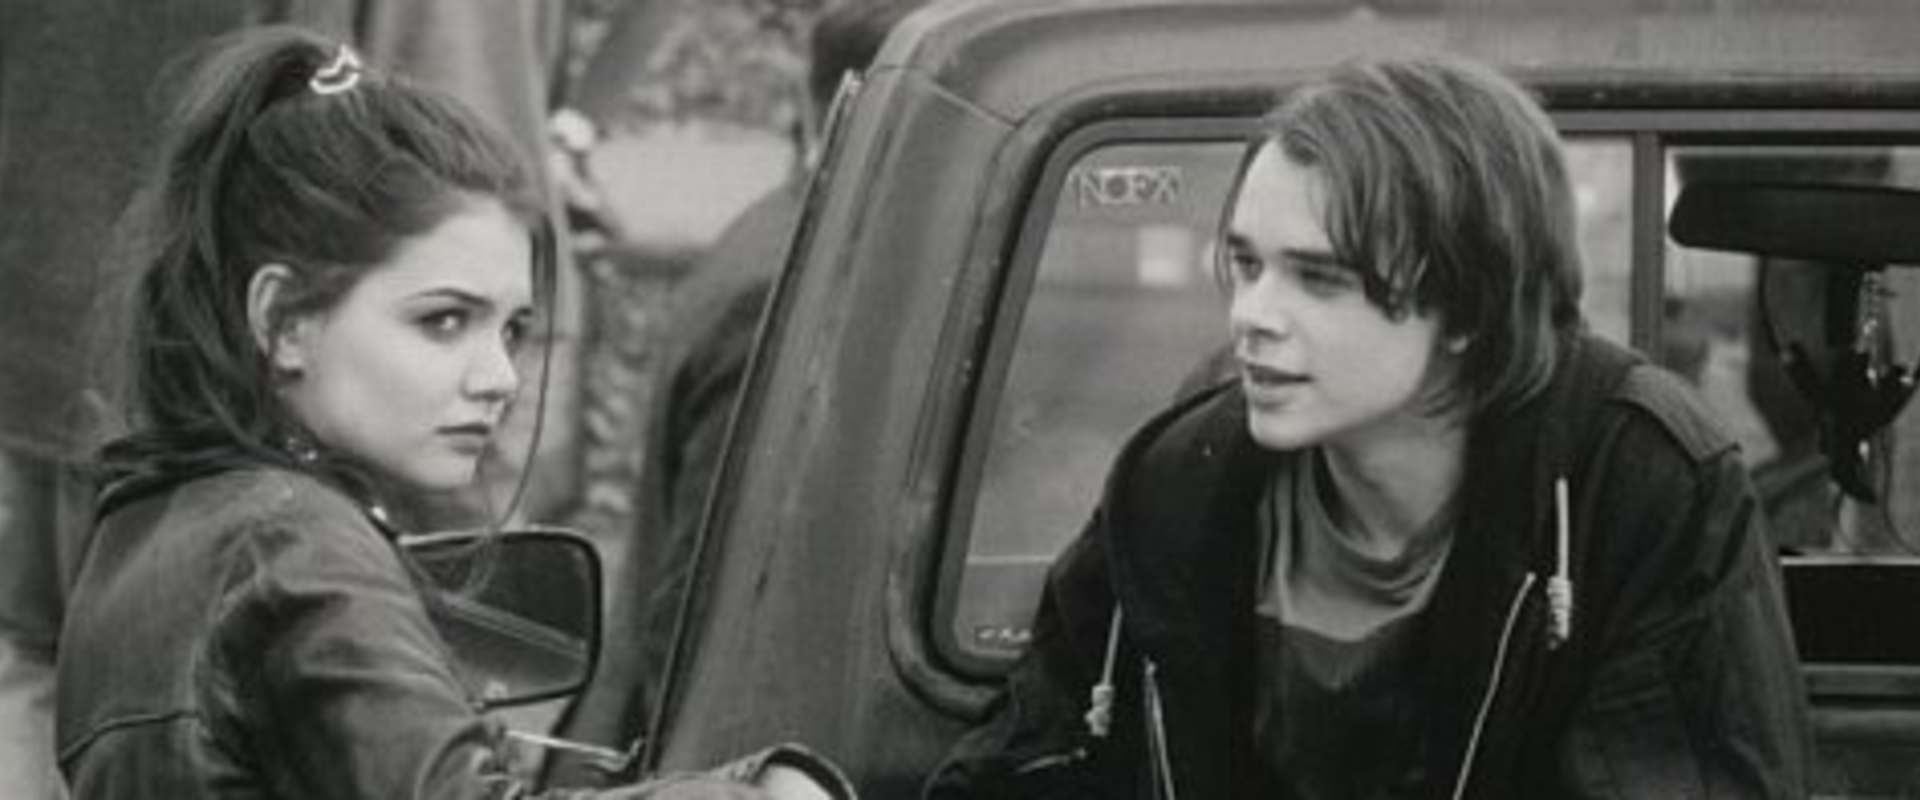 Disturbing Behavior background 1